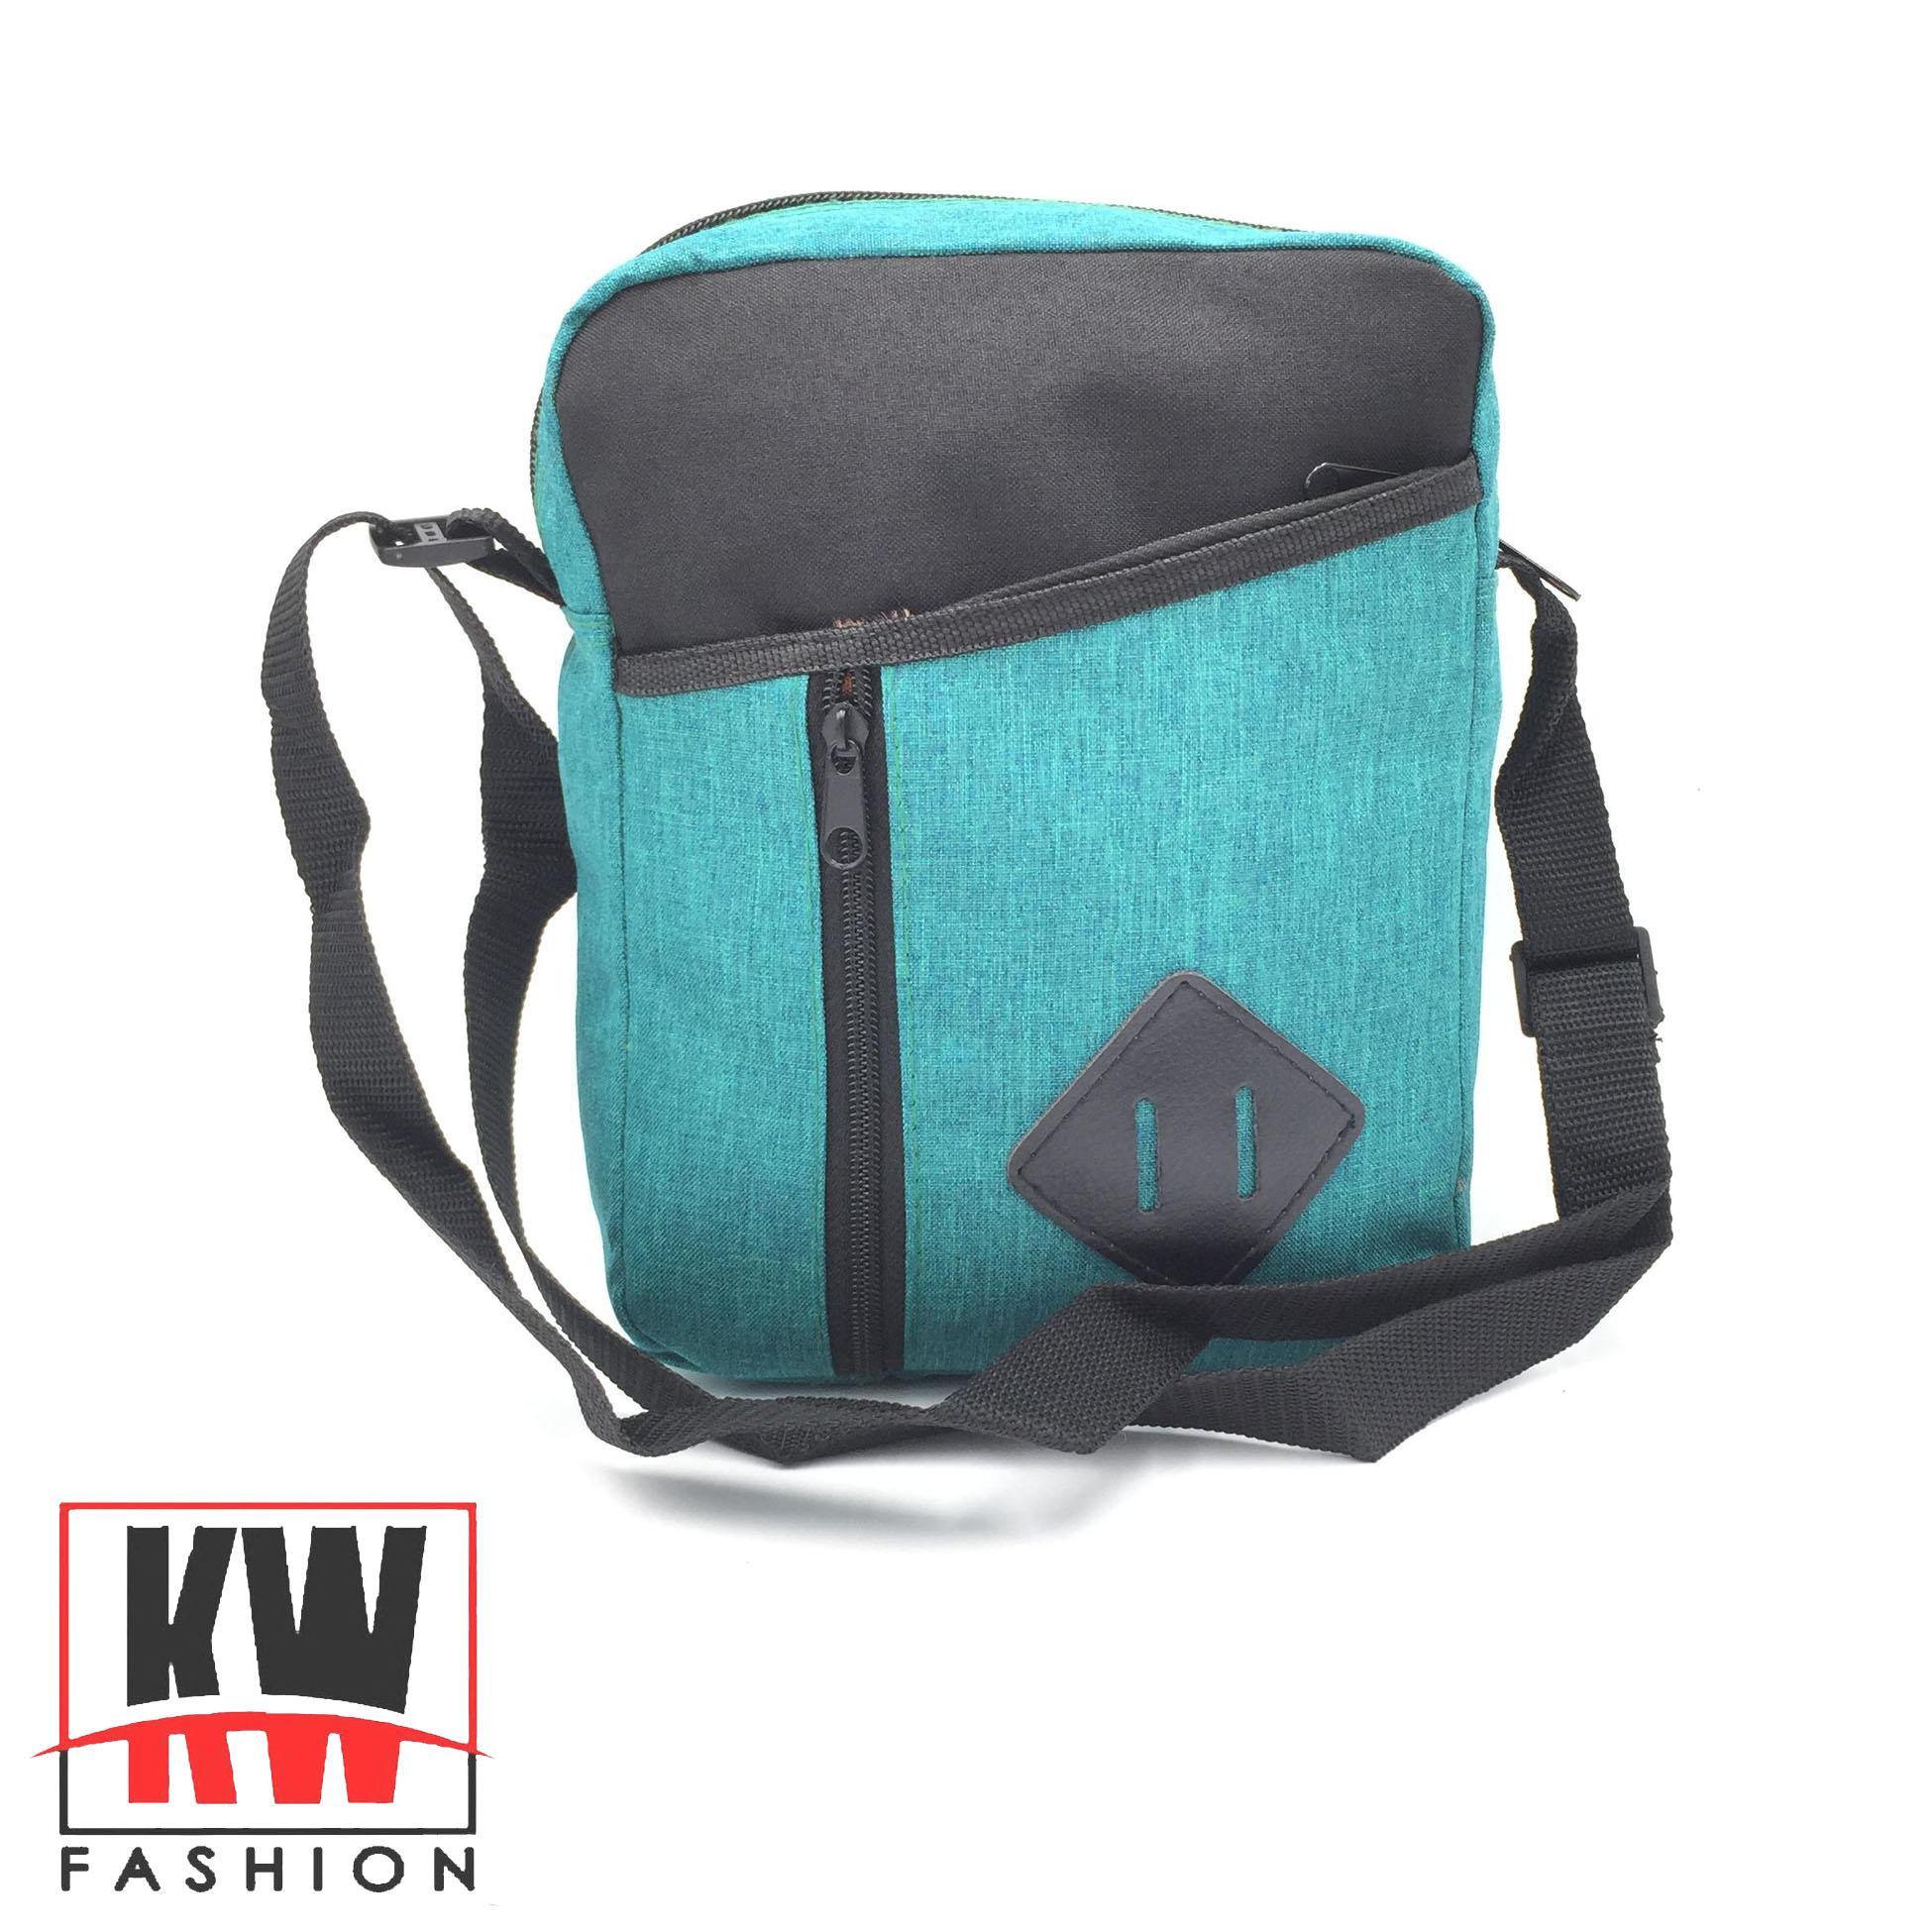 KW Water Proof Sling Bag #9999 image on snachetto.com